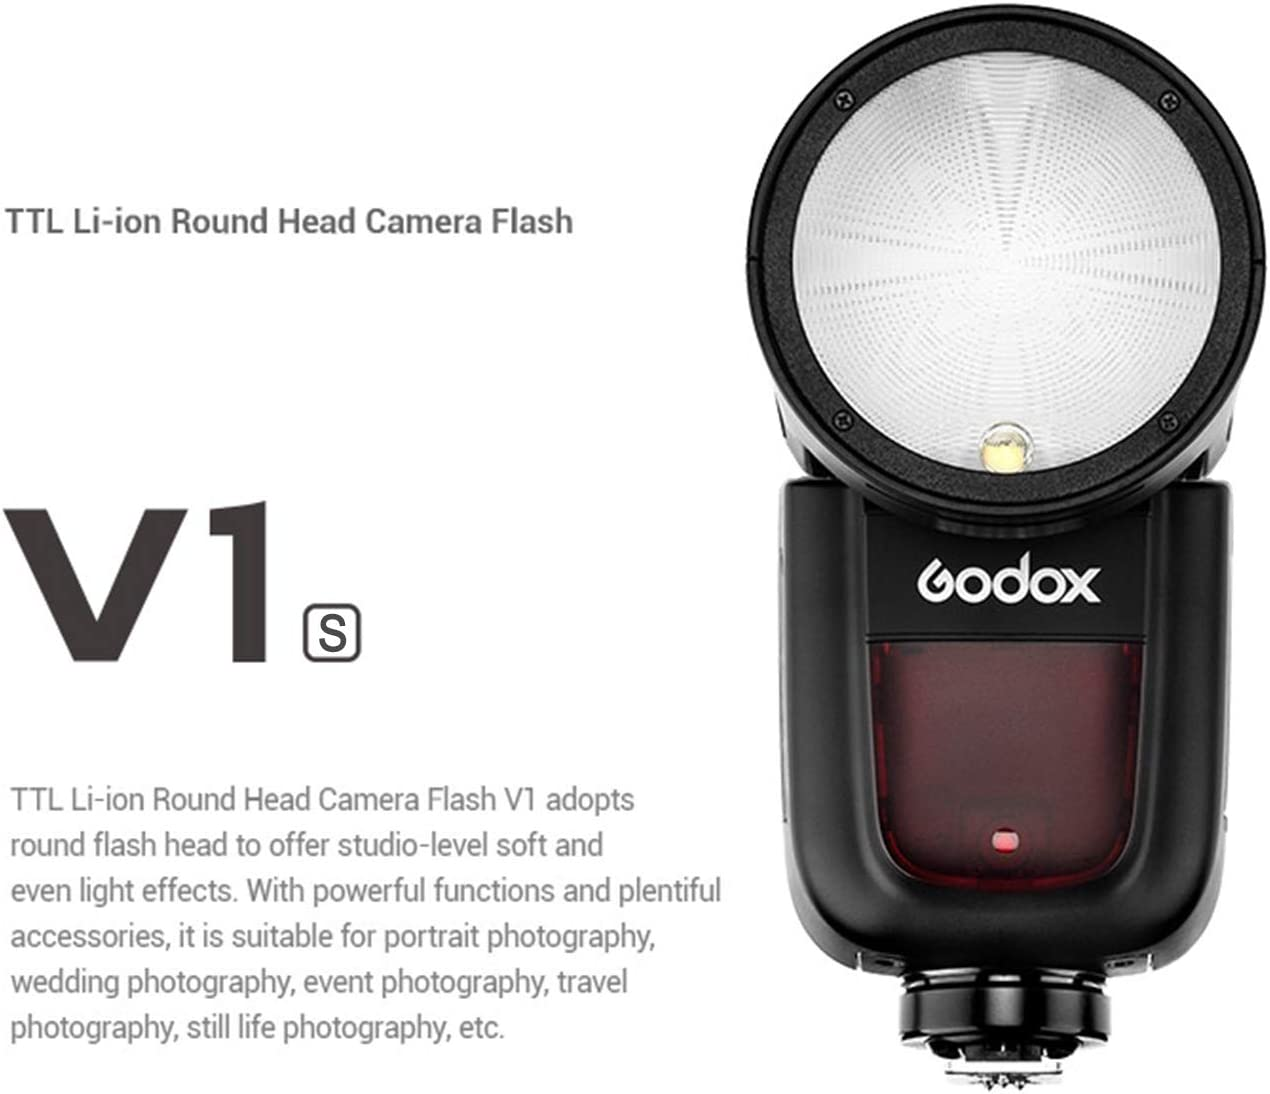 Recycle Time Godox V1-S TTL Round Head Flash Speedlite with 1//8000s HSS 10 Level LED Modeling Lamp for Sony DSLR Camera 2600mAh Lithium Battery 1.5 sec